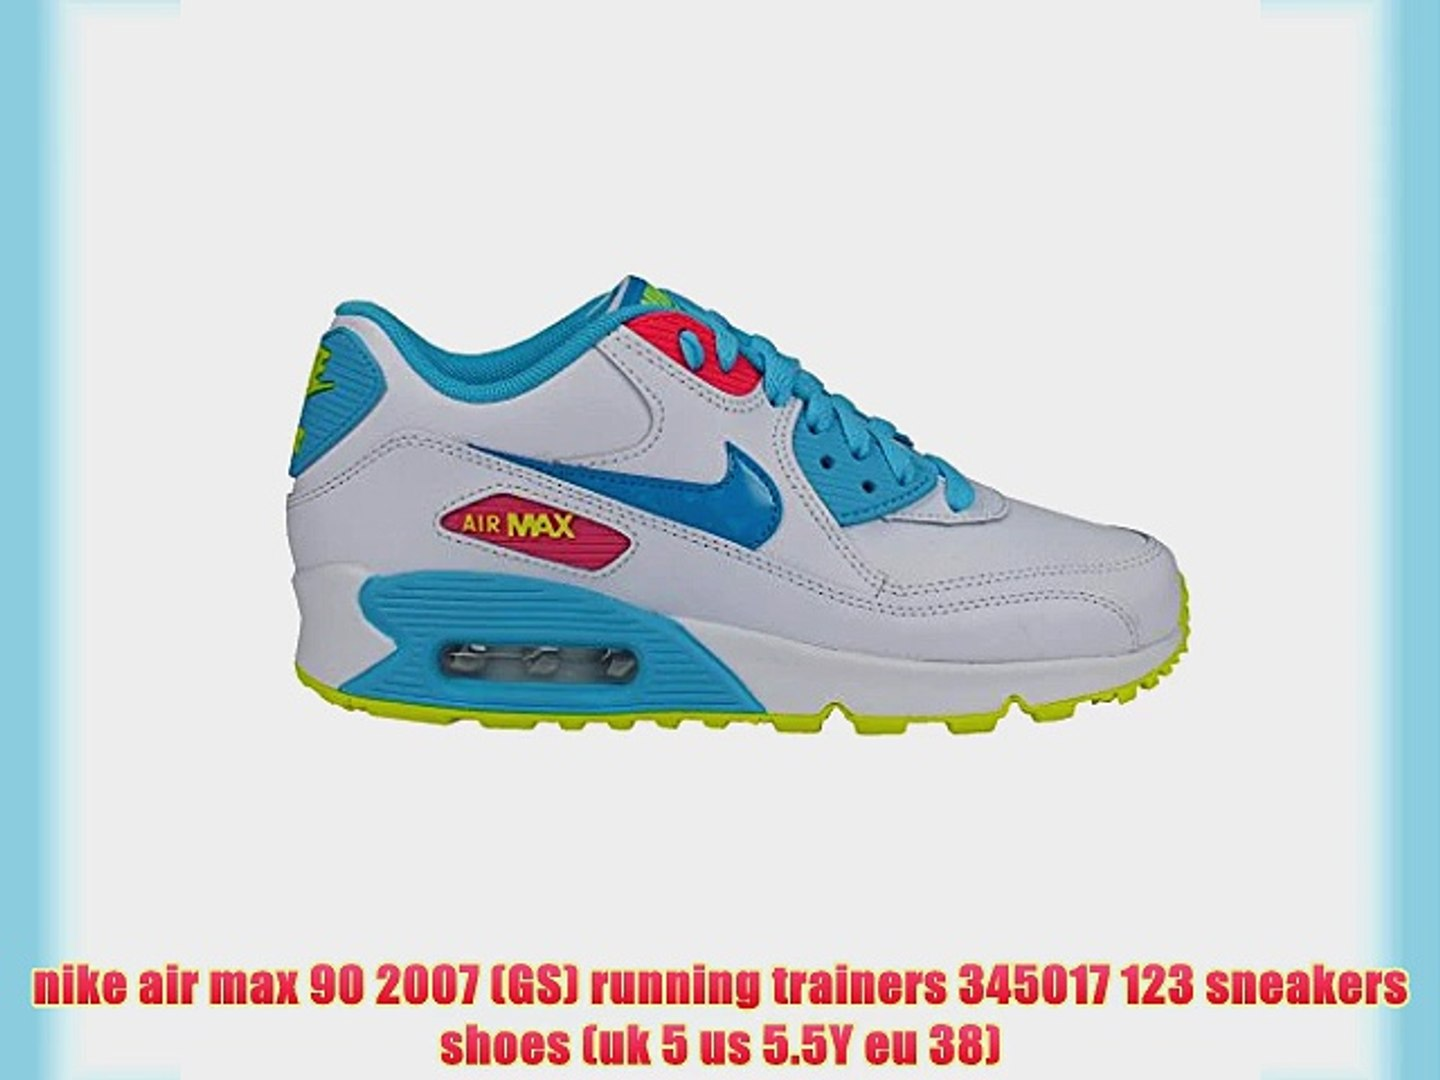 nike air max 90 2007 (GS) running trainers 345017 123 sneakers shoes (uk 5 us 5.5Y eu 38)